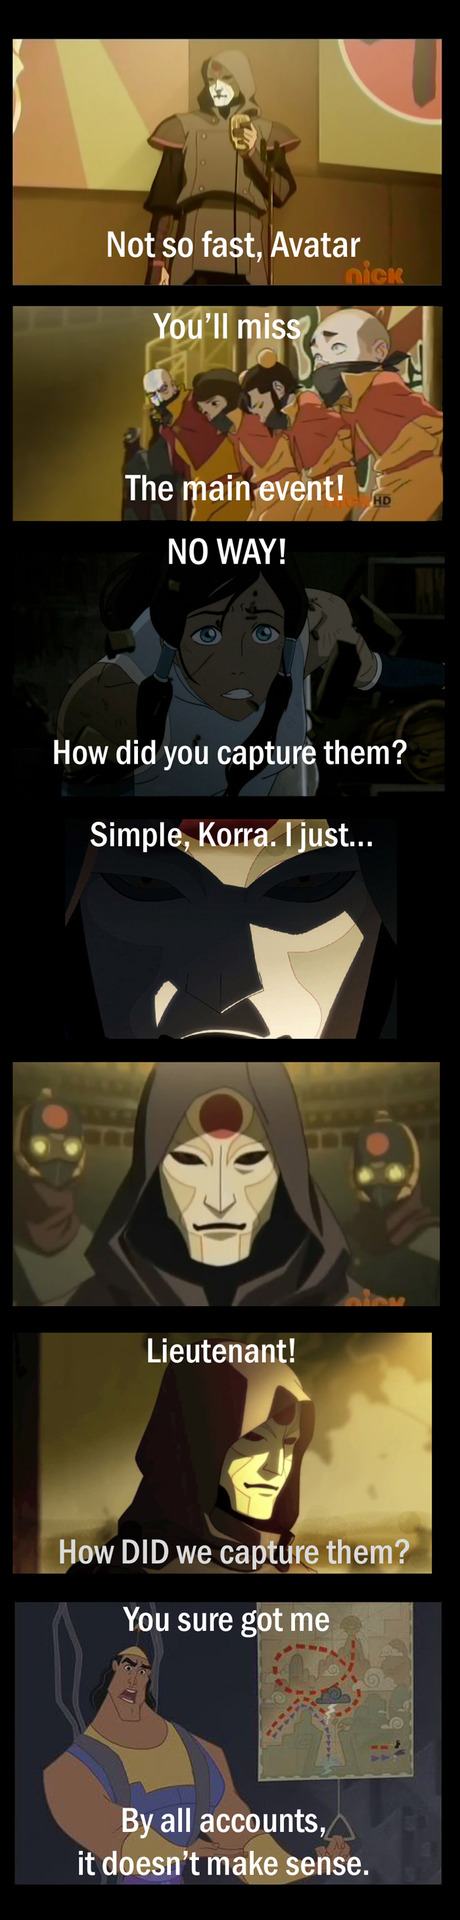 How DID we capture them?